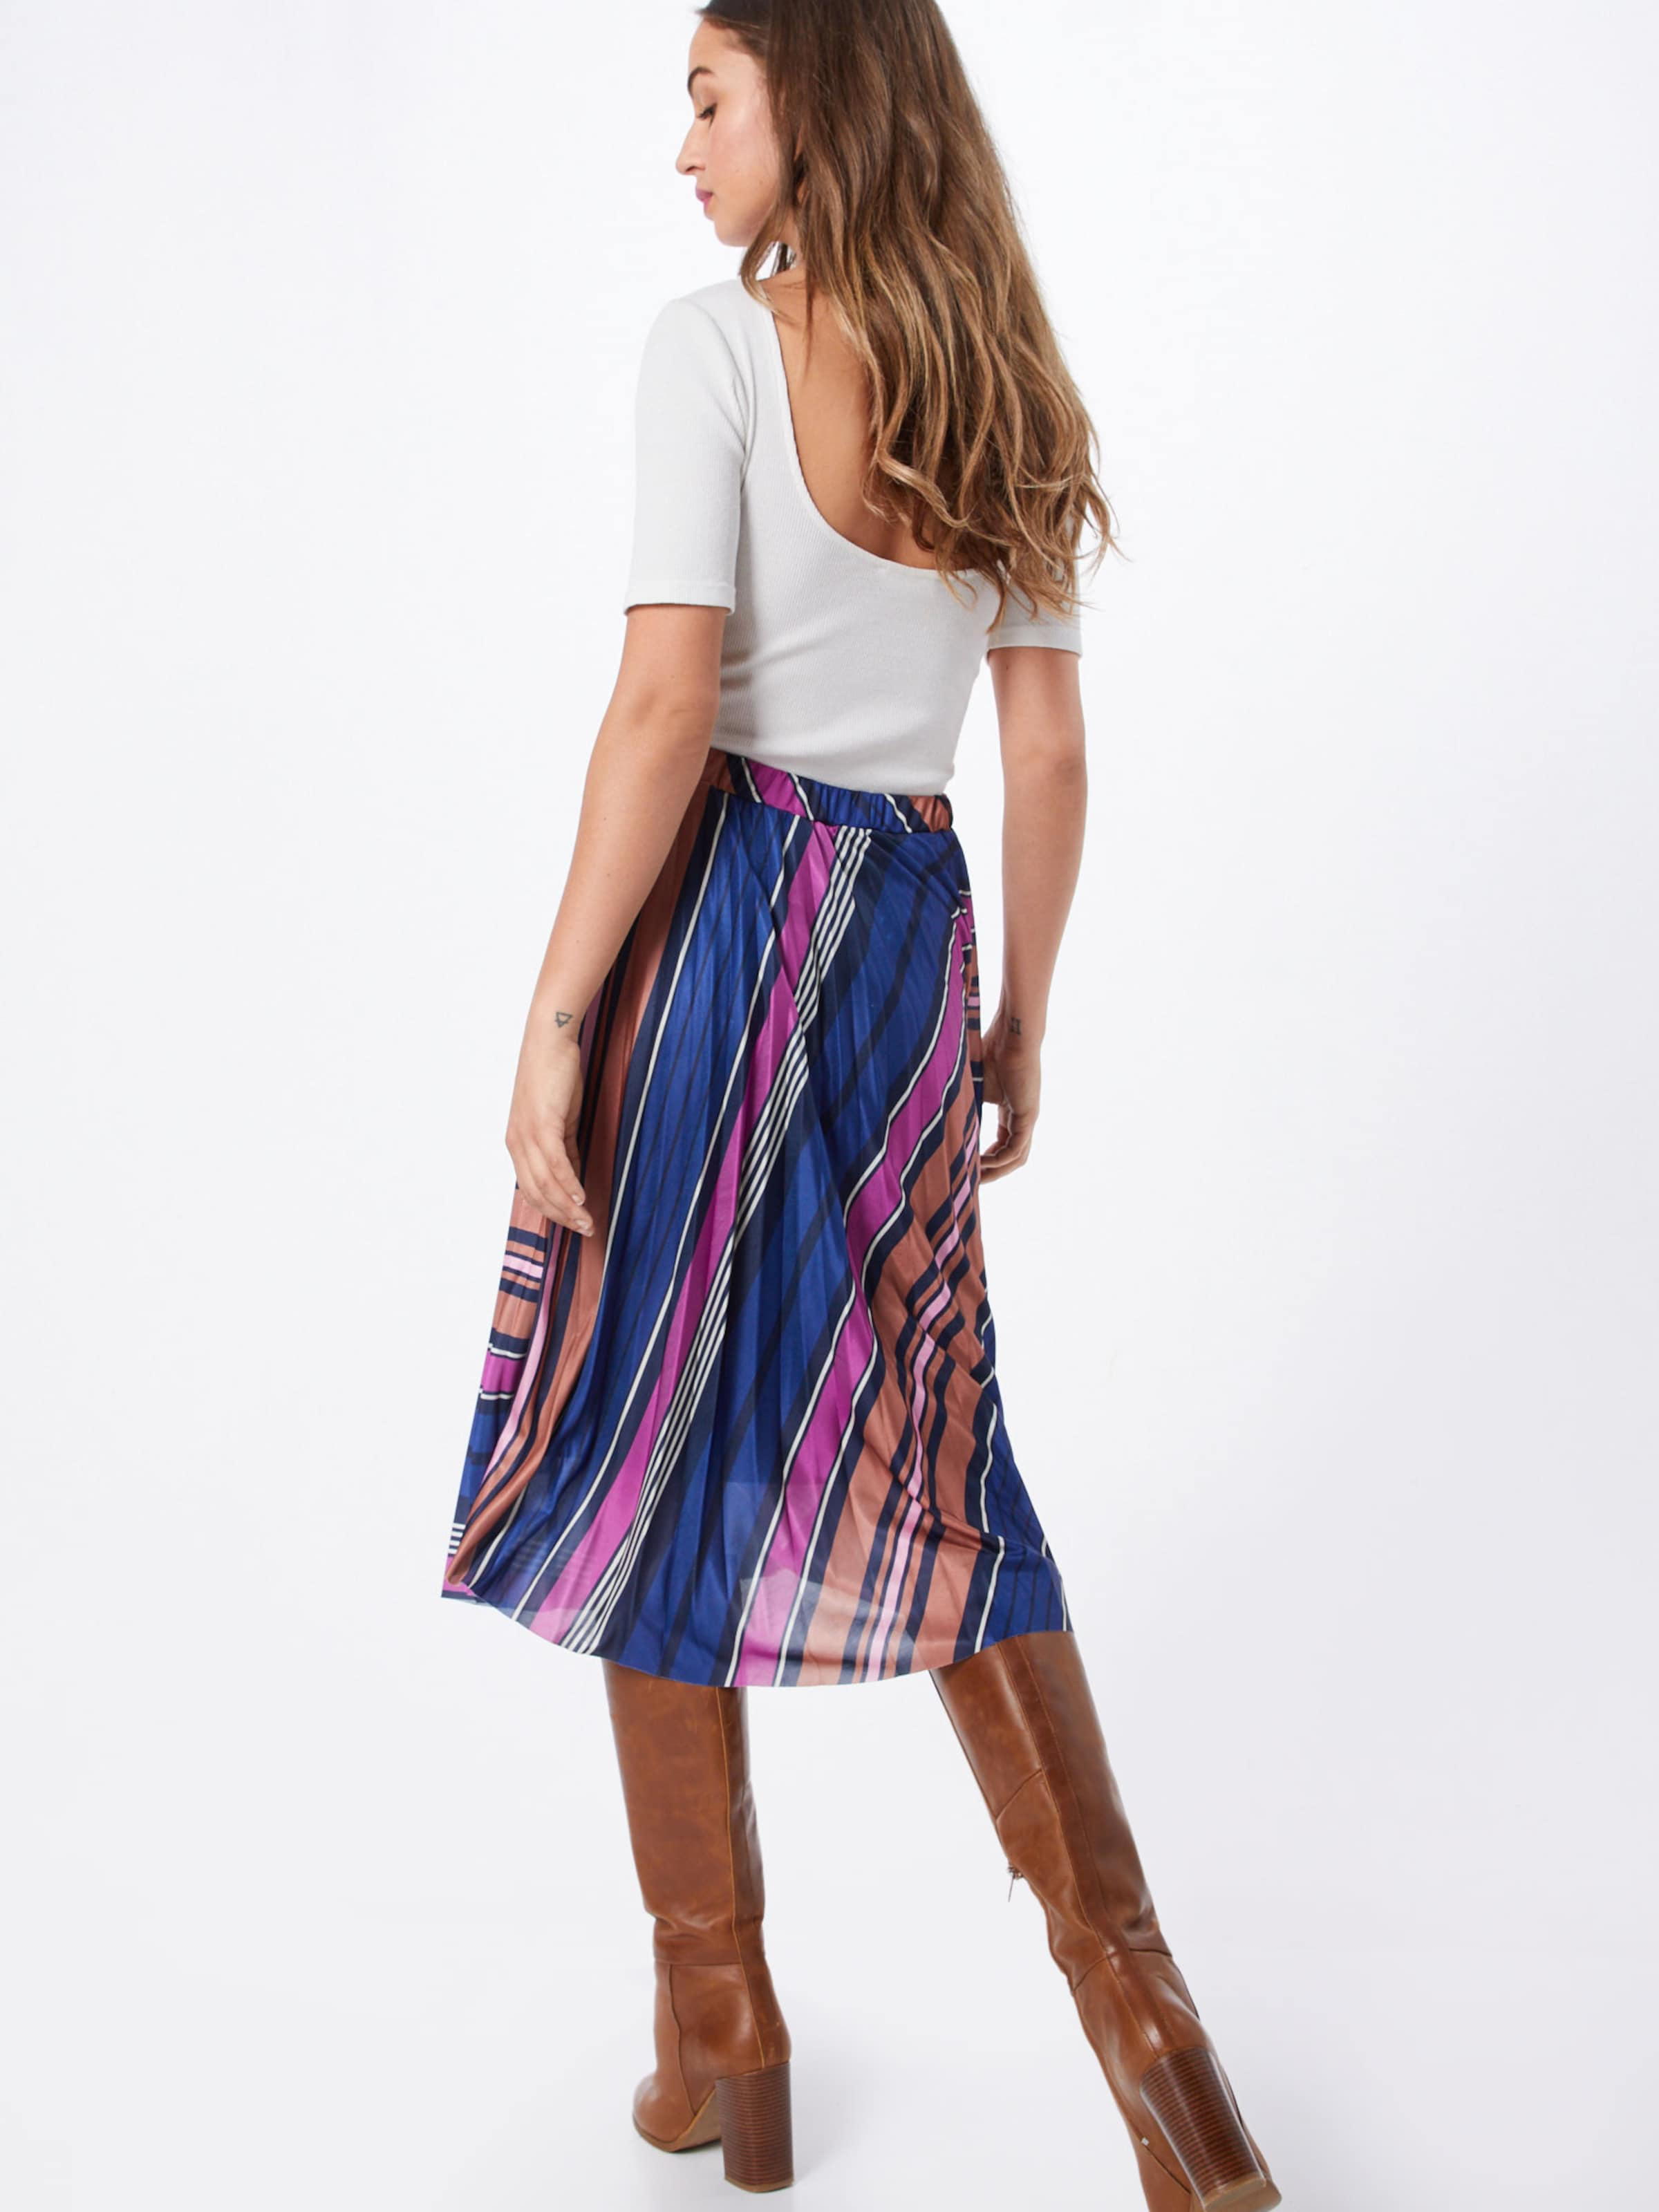 Luxury Skirt' 'sl Soaked In Pippa Jupe En BleuMarron Violet SqzUMVp